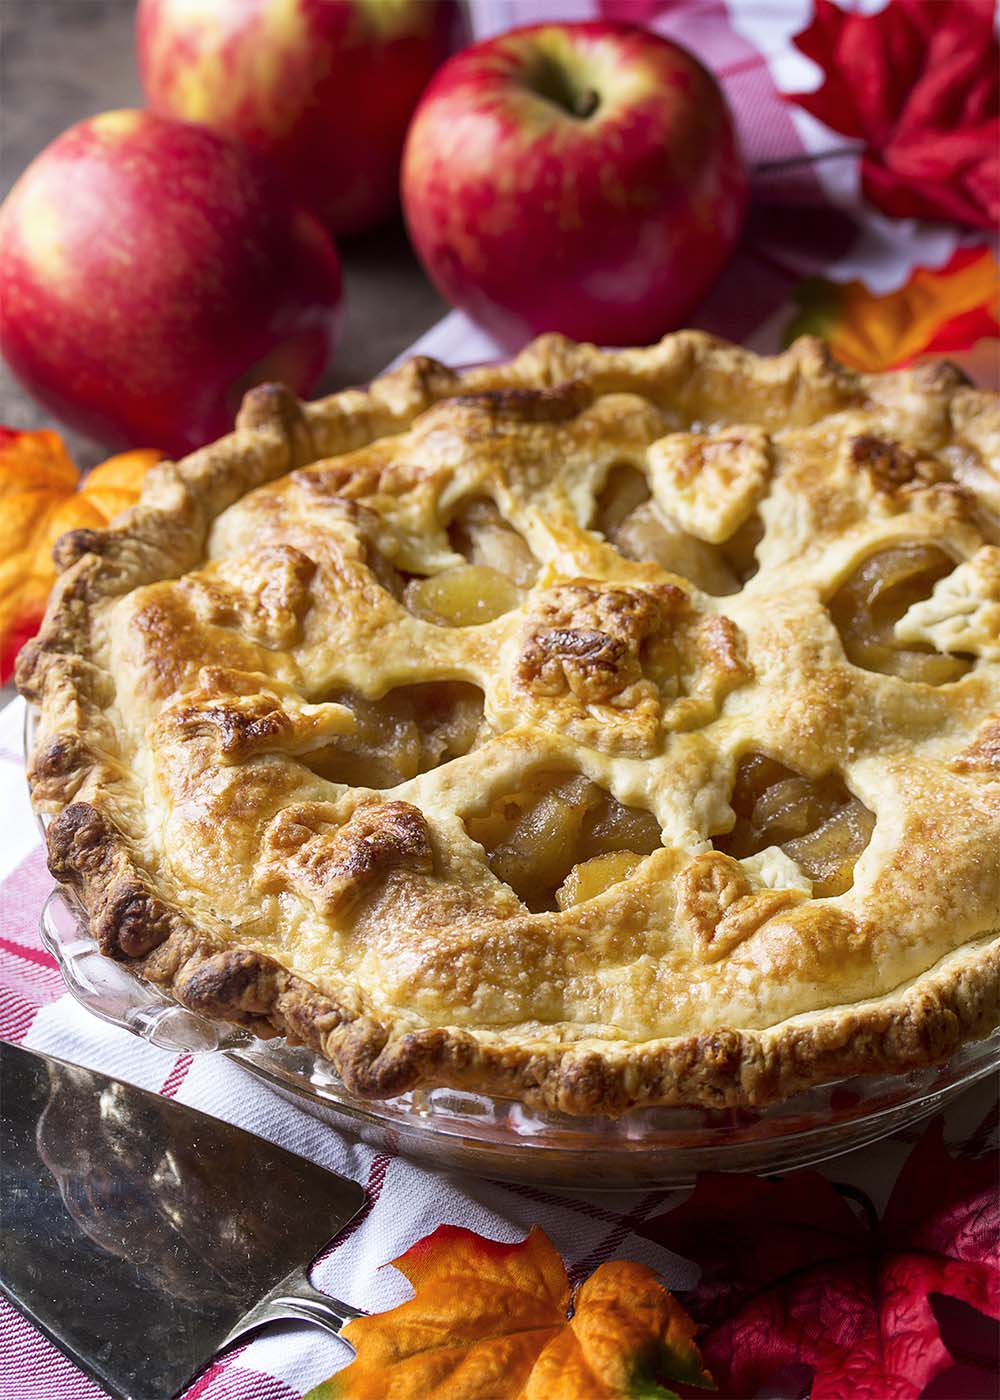 Deep dish apple pie with a golden brown crust and bubbly apple filling surrounded by apples and fall leaves.